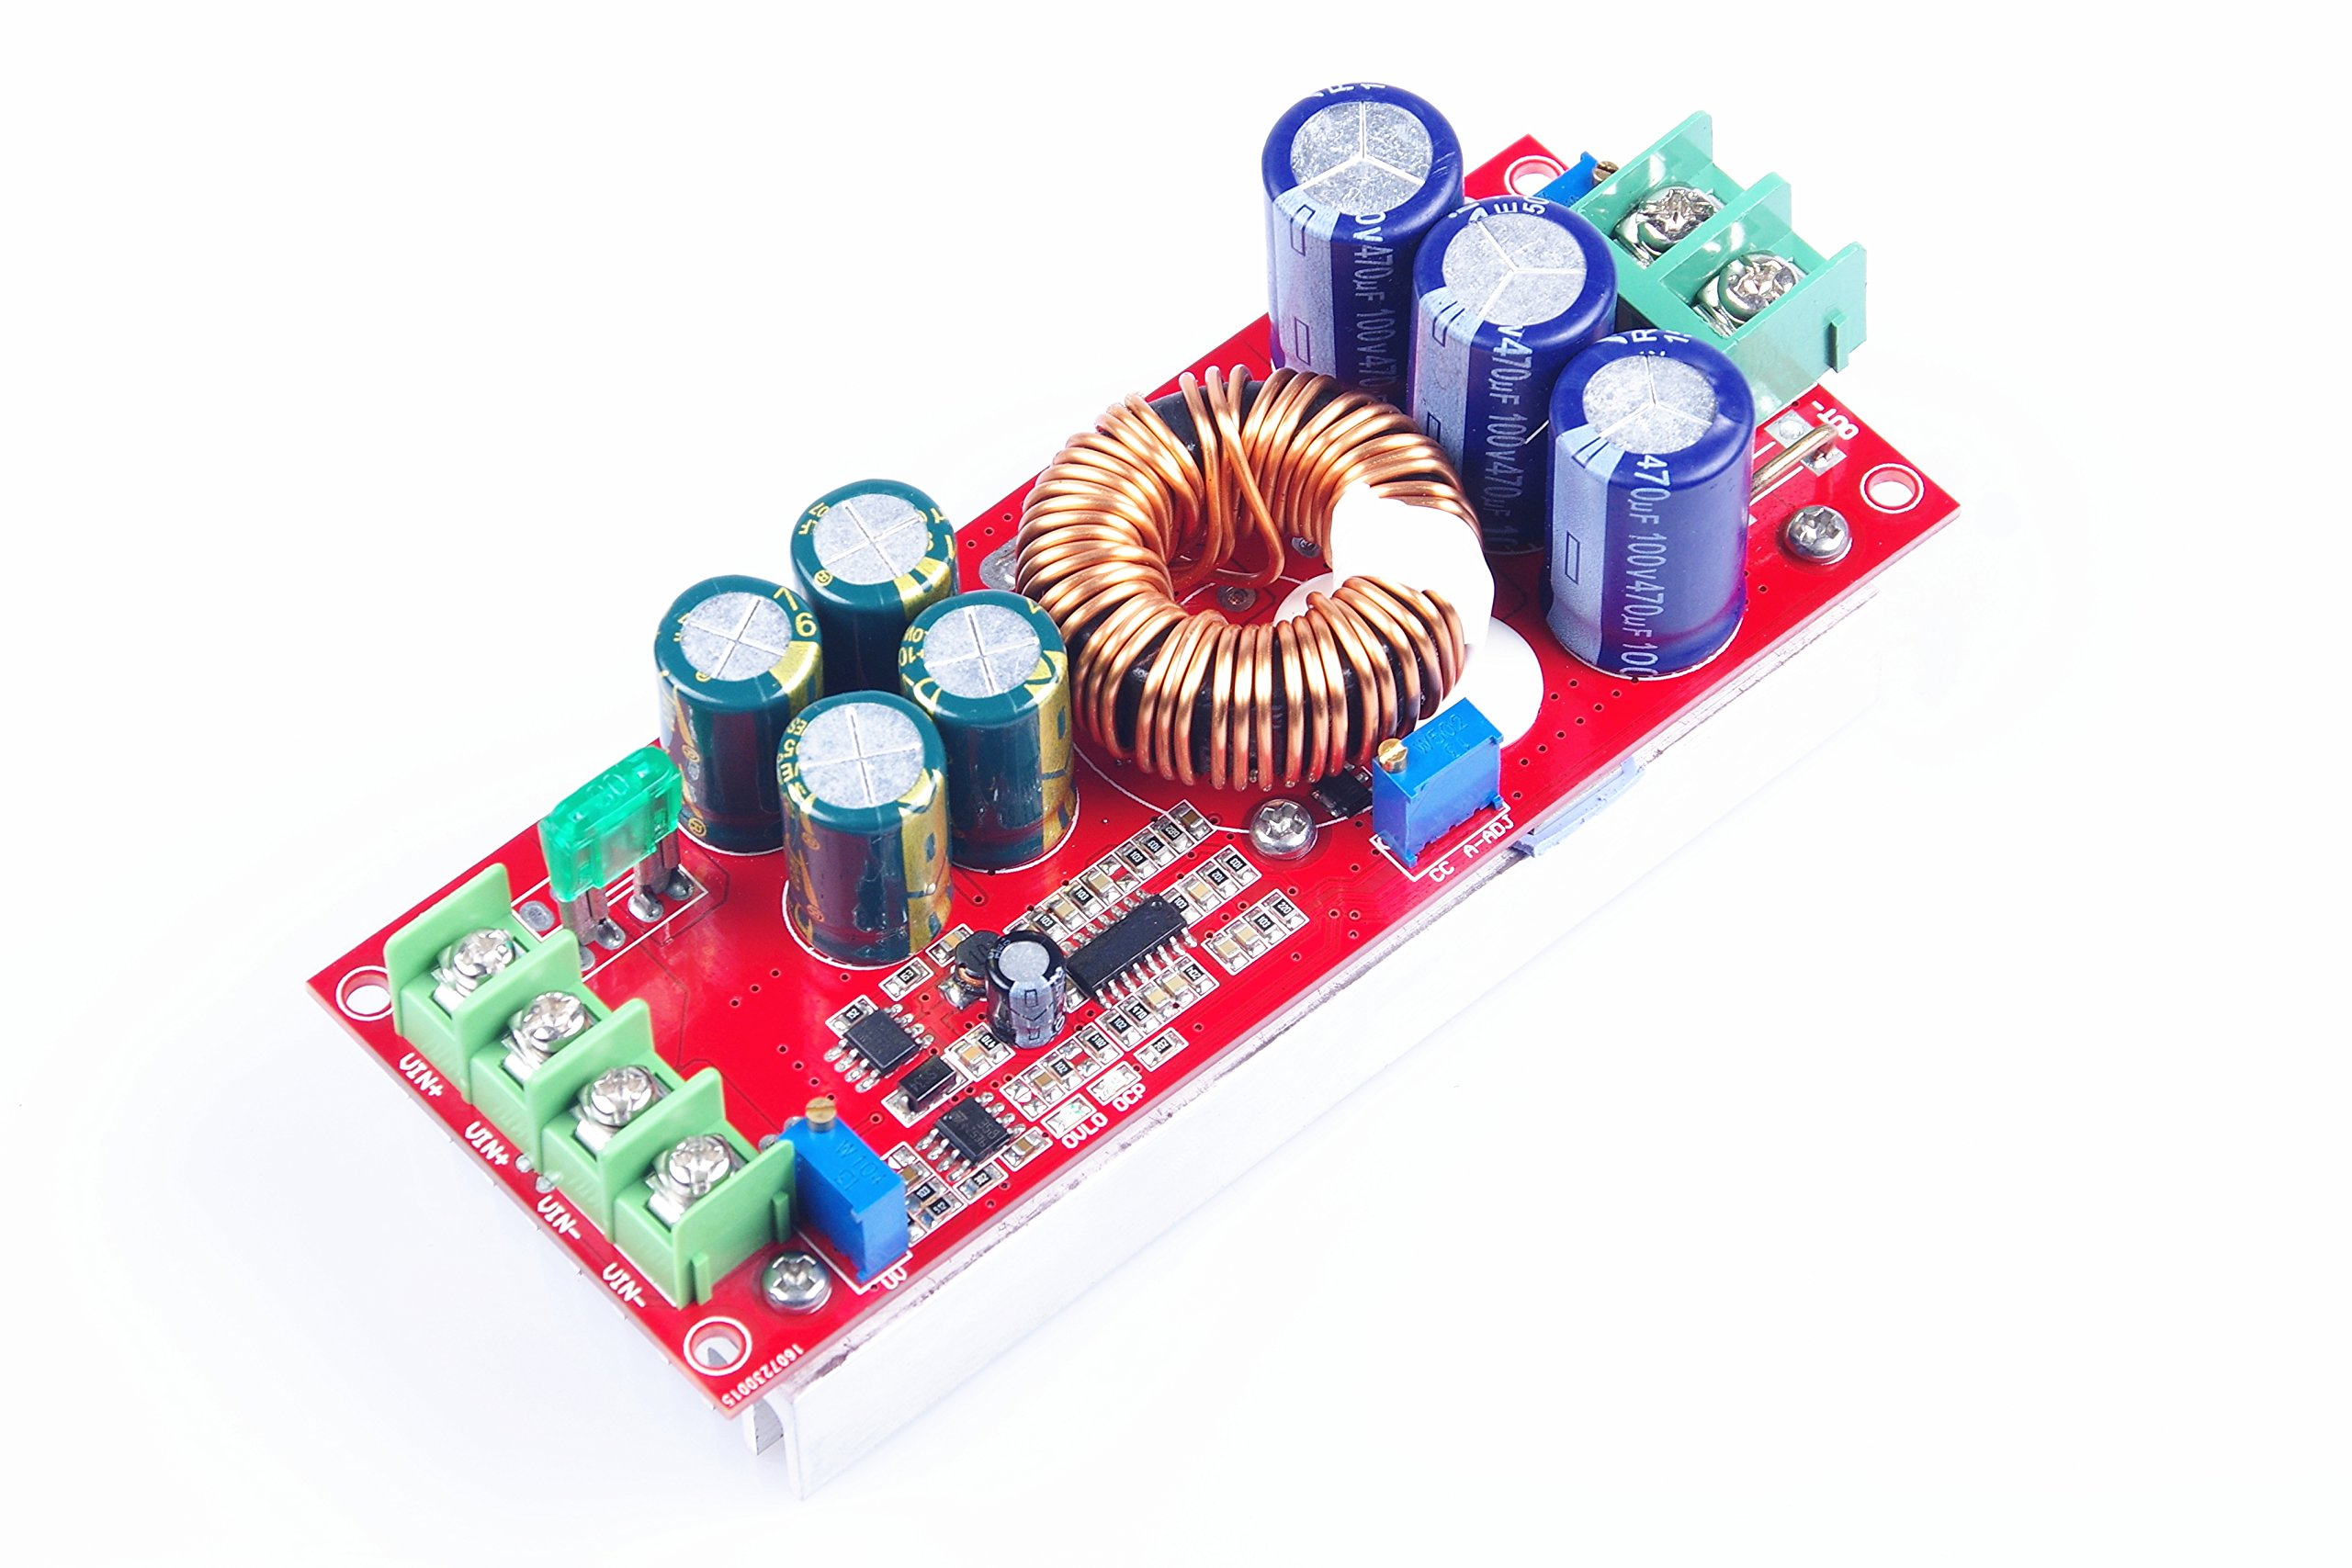 KNACRO 1200W 20A super power constant voltage constant current module/solar boost controller/battery charging module 12V/24V/36V/48V/60V/72V DC 10V-60V to 12V-80V Step Up Power Supply